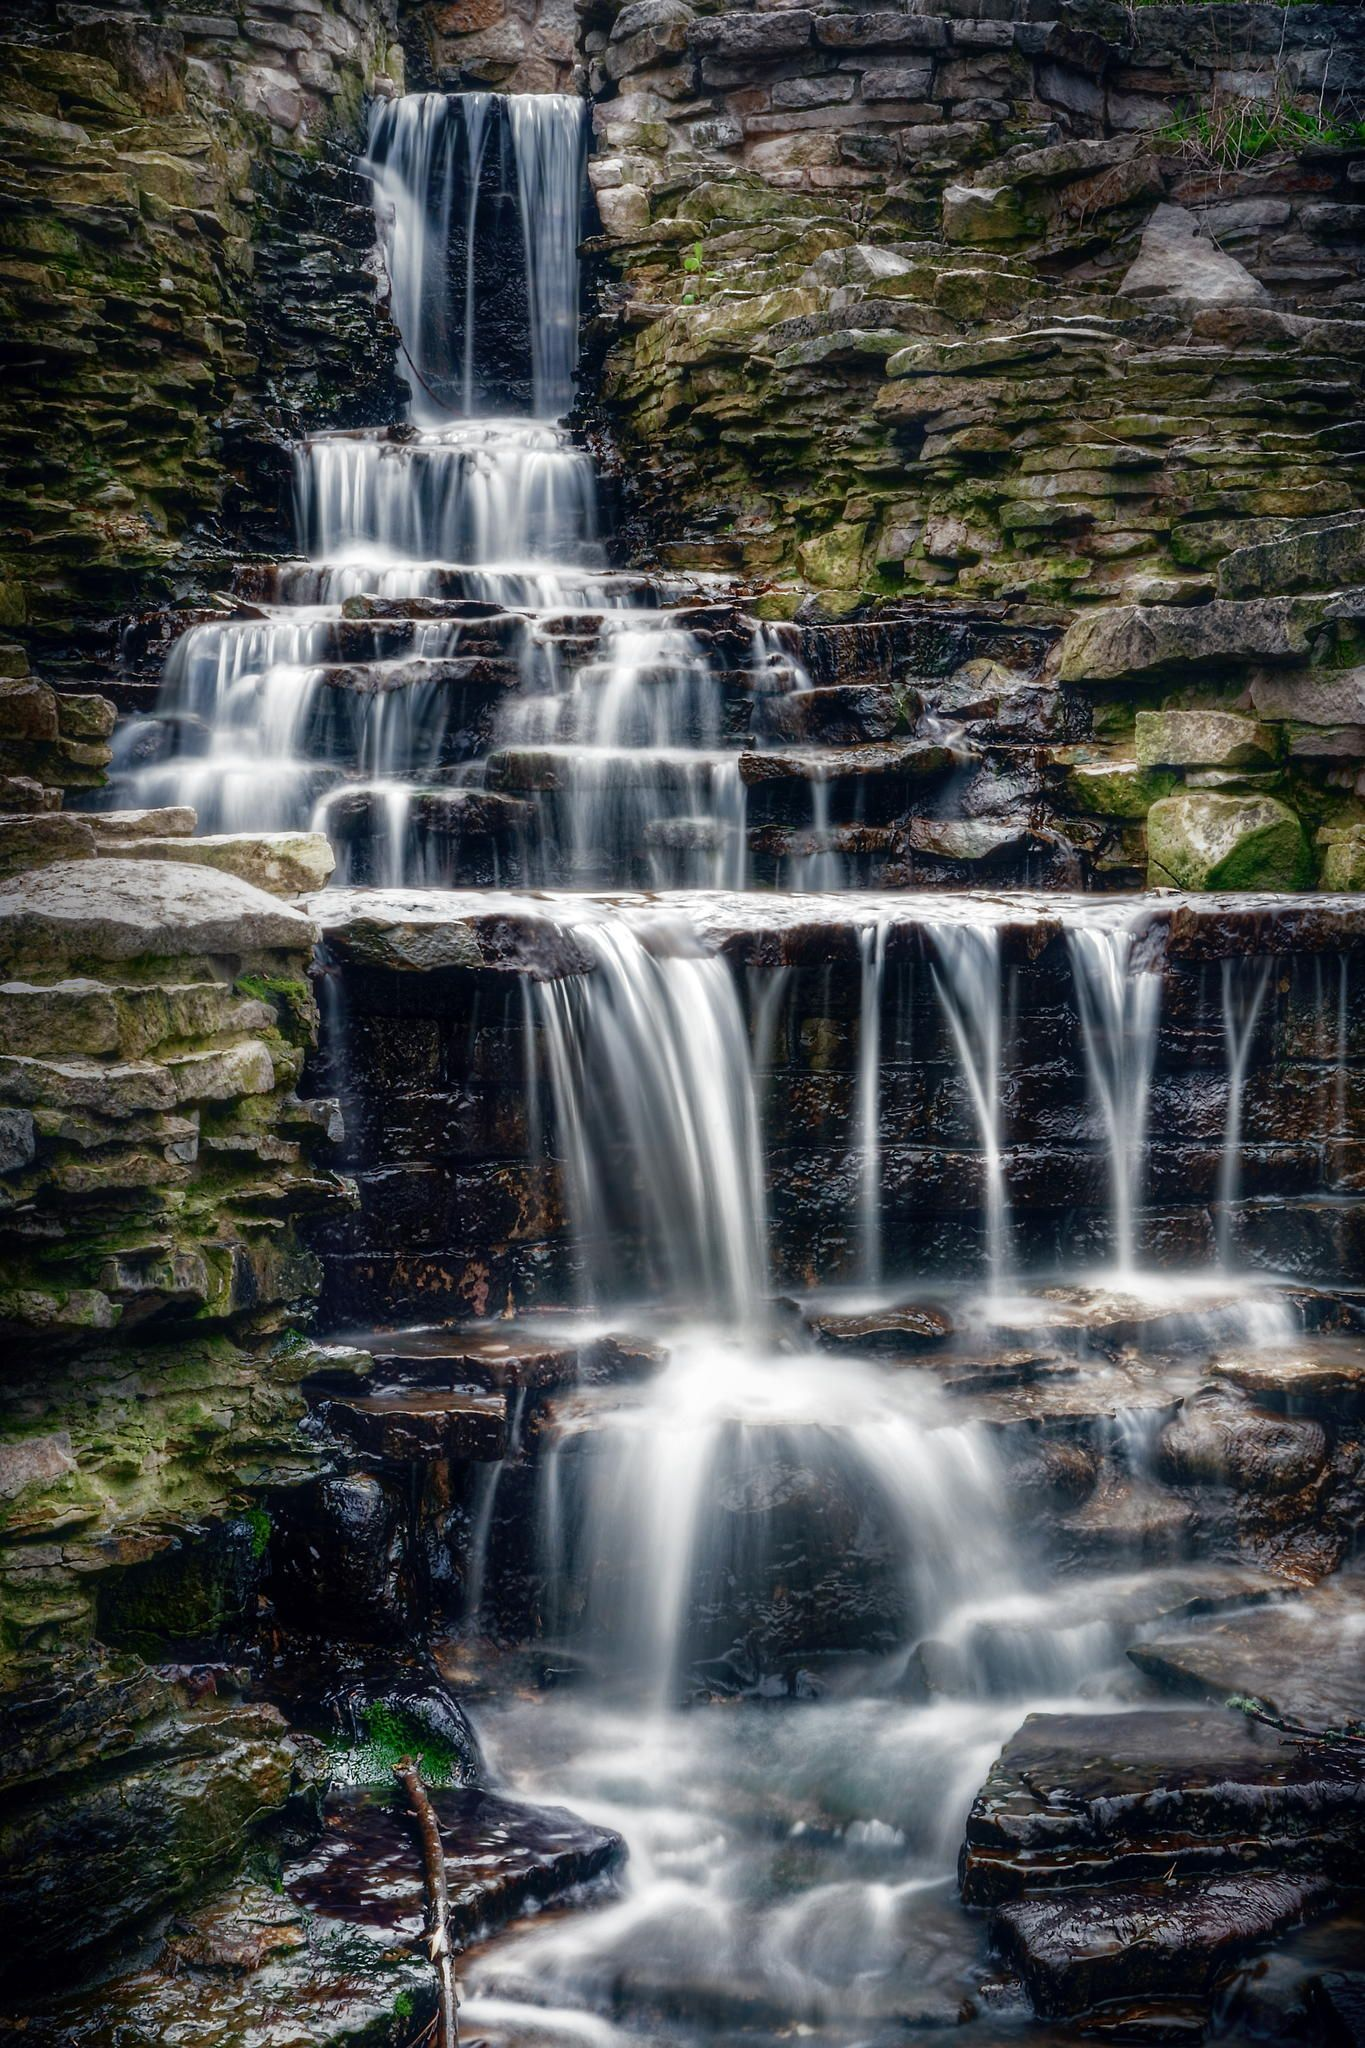 Lake Park Waterfall by Scott Norris on 500px the Lake Park waterfall was really flowing. Milwaukee, Wisconsin.